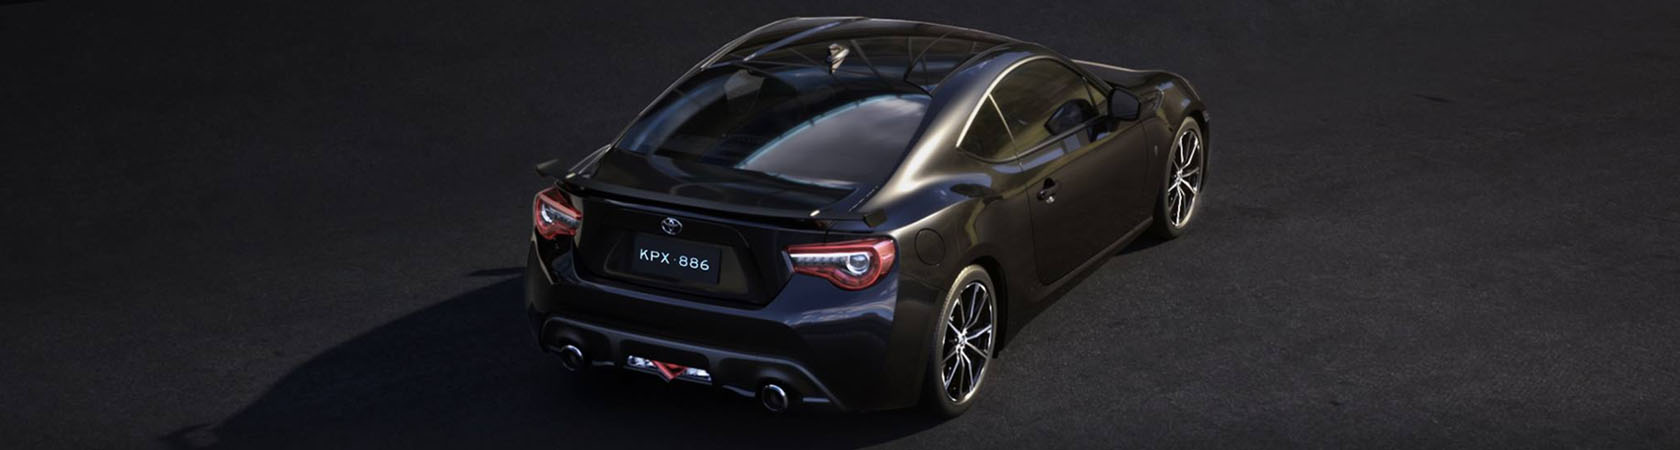 Bridge Toyota 86